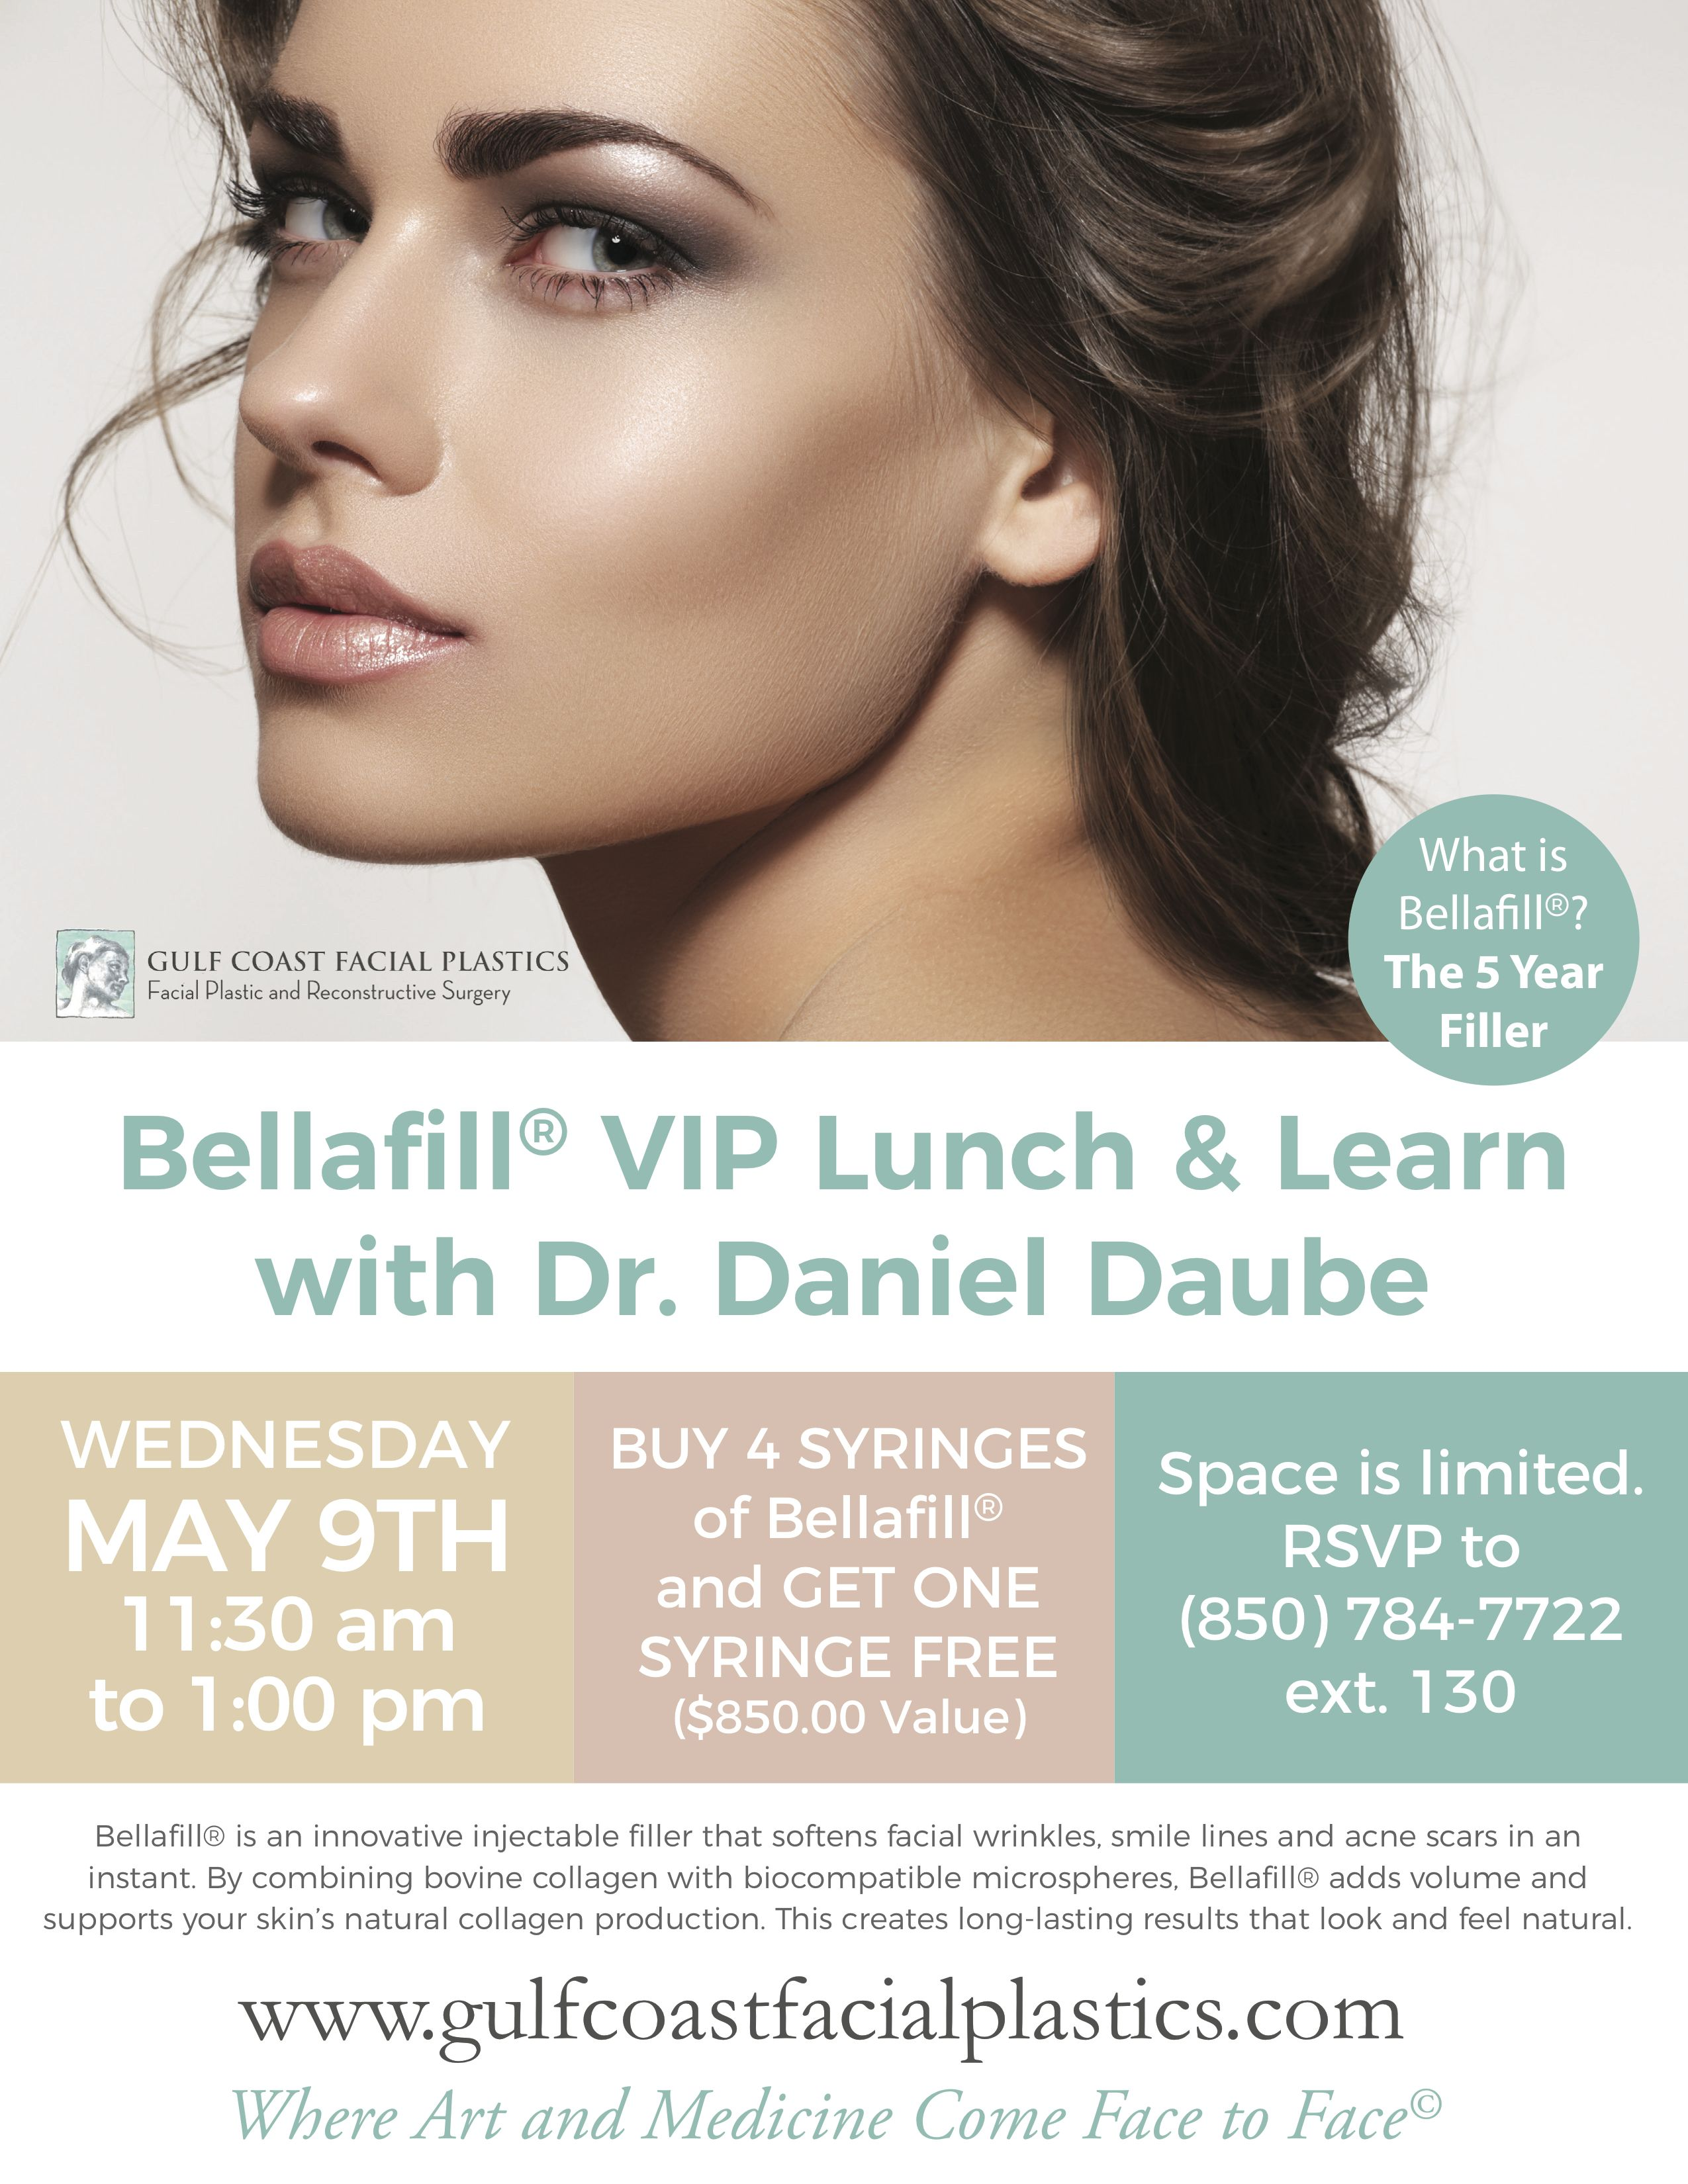 Do You Want Natural Looking Results That Last Then Bellafill Is The Filler For You Join Us On Wednesday May 9th For Facial Plastic Facial Cosmetic Surgeon